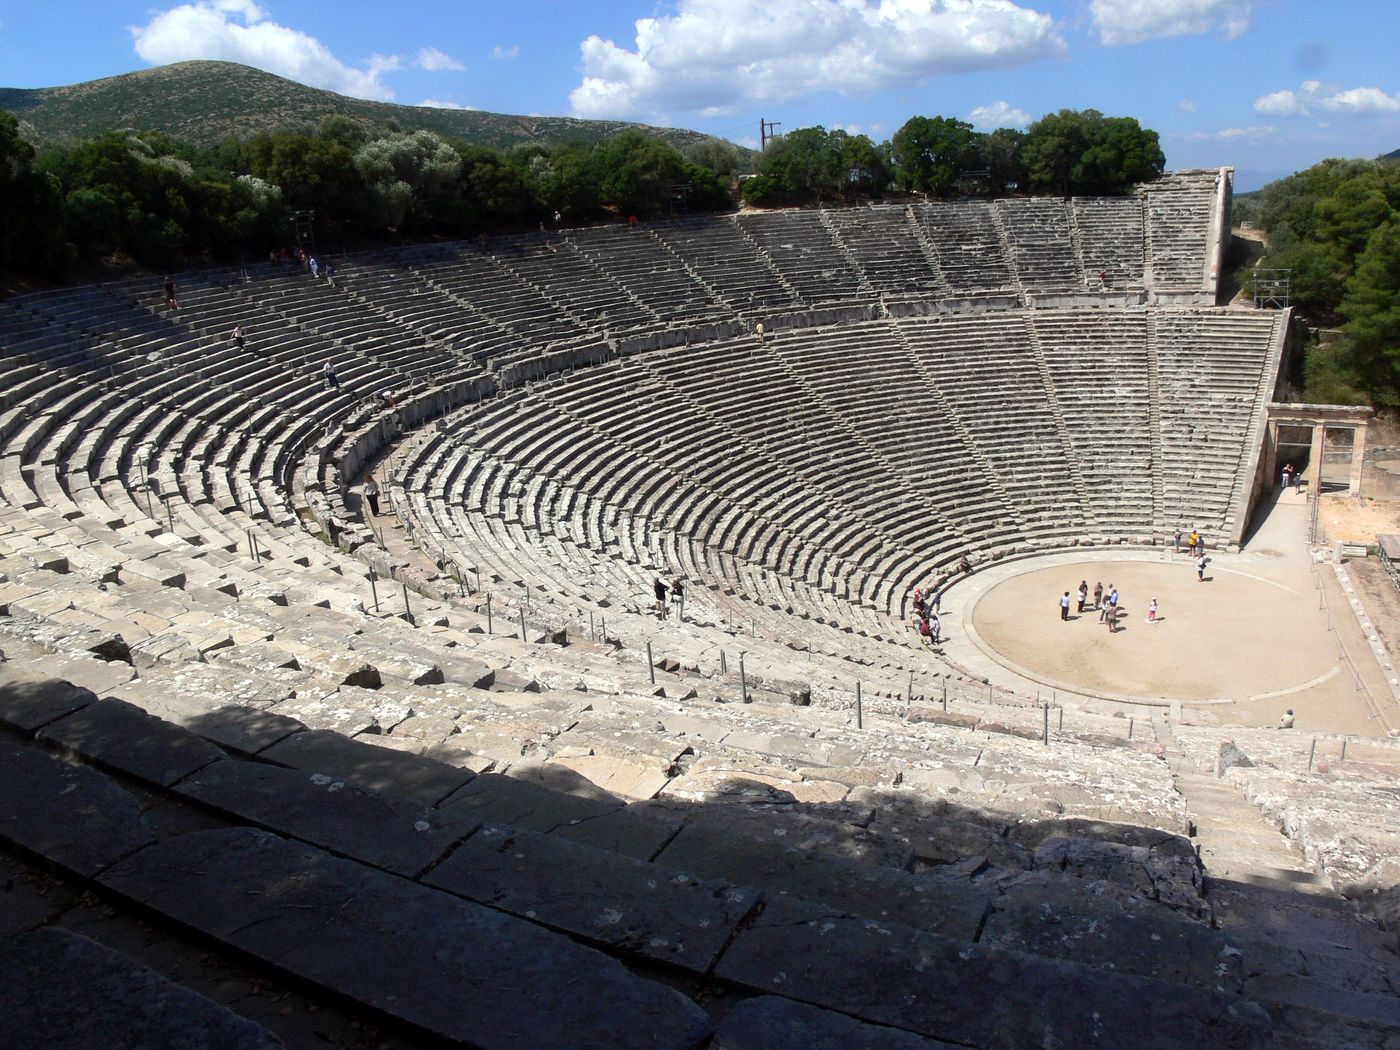 The Great Theatre of Epidaurus